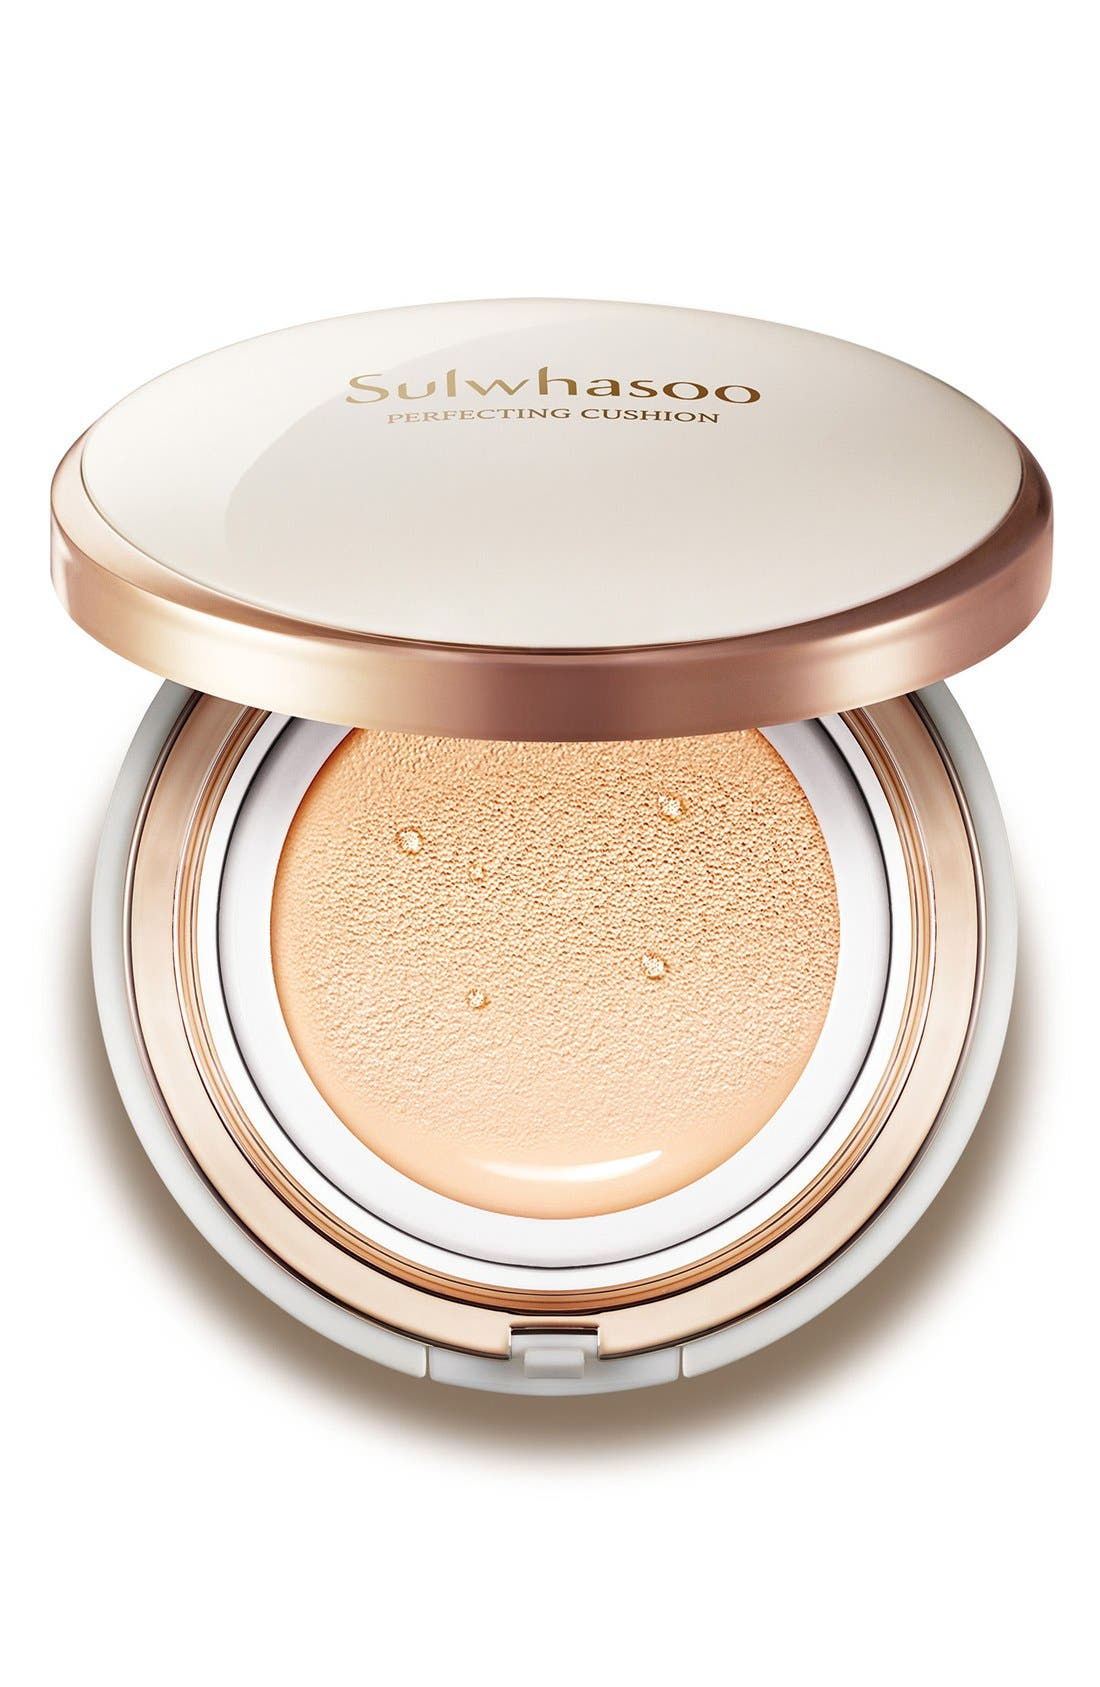 'Perfecting Cushion' Foundation Compact,                         Main,                         color, 23 MEDIUM BEIGE